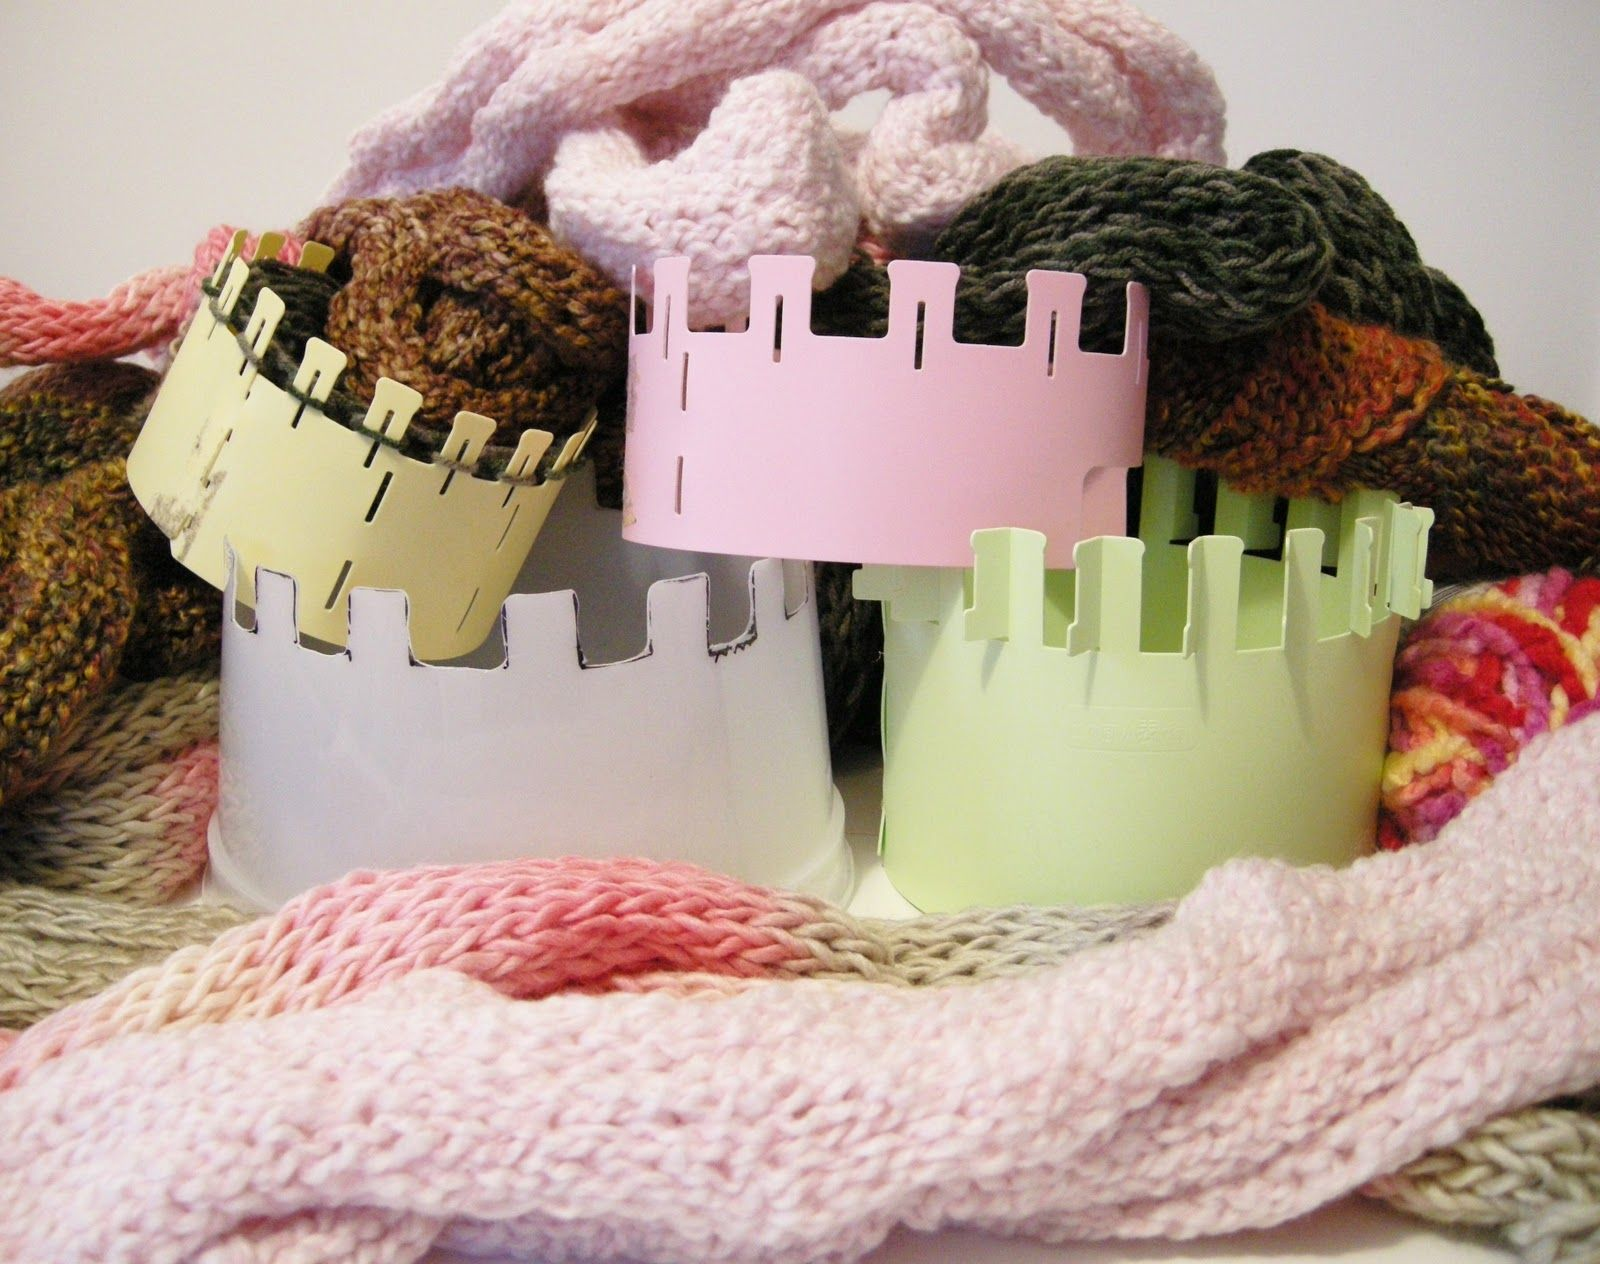 Make Your Own Spool Knitter From Repurposed Plastic Containers